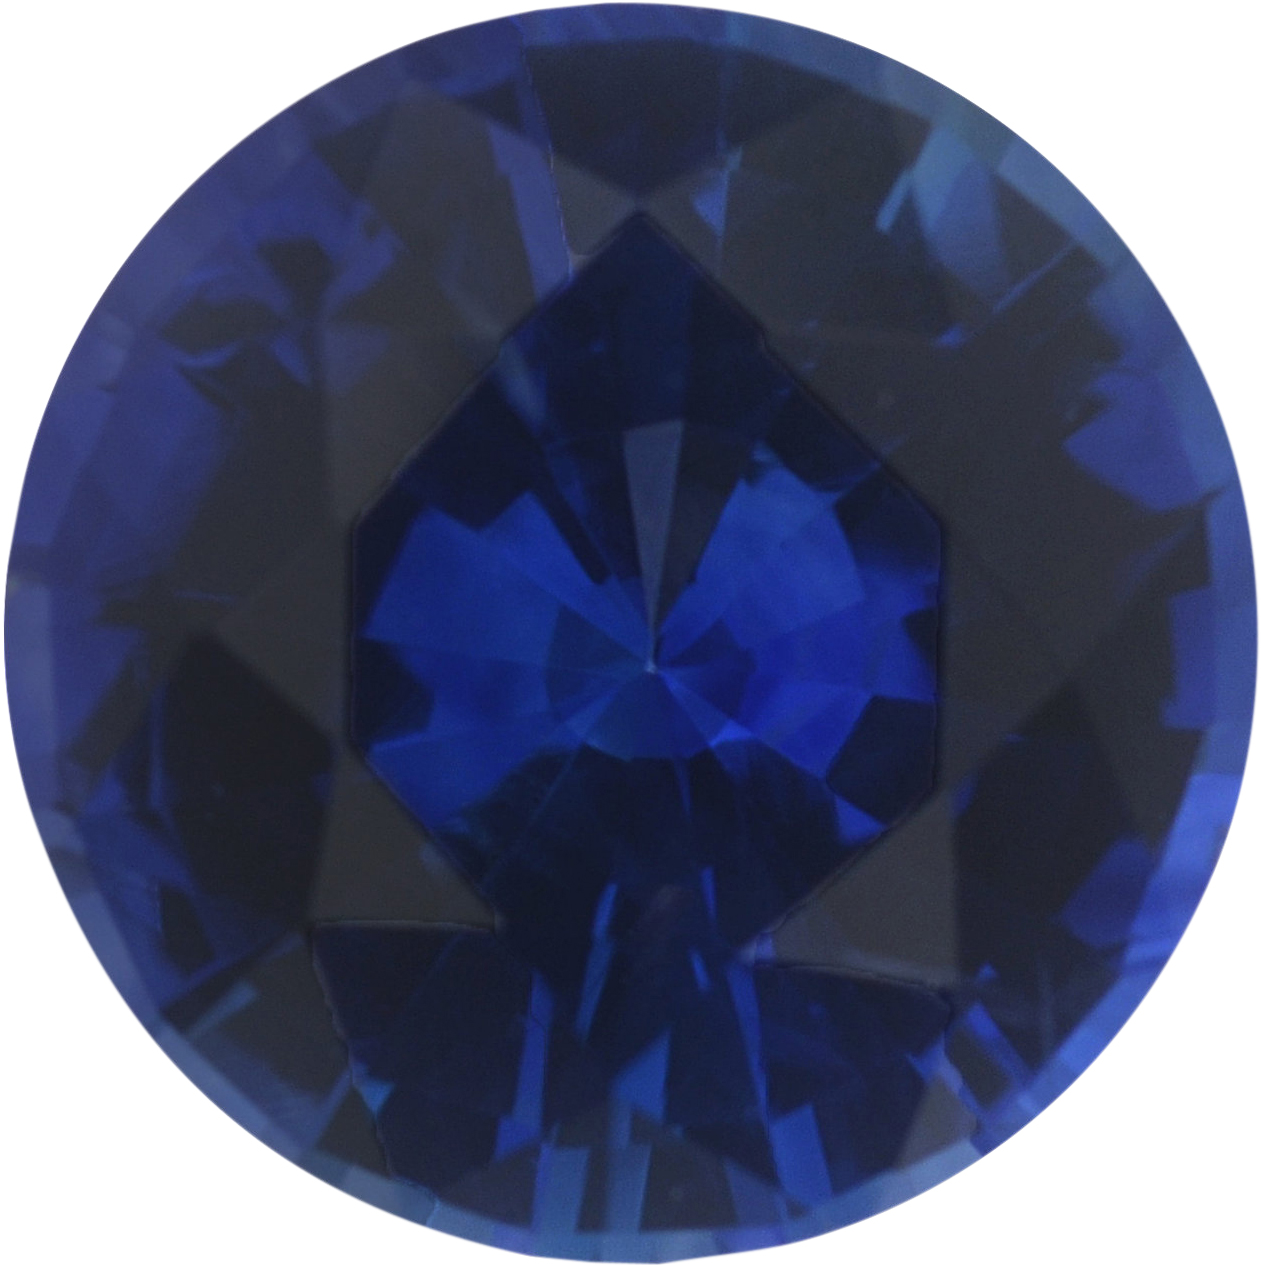 0.97 carats Blue Loose Sapphire Gemstone in Round Cut, 6.24 mm